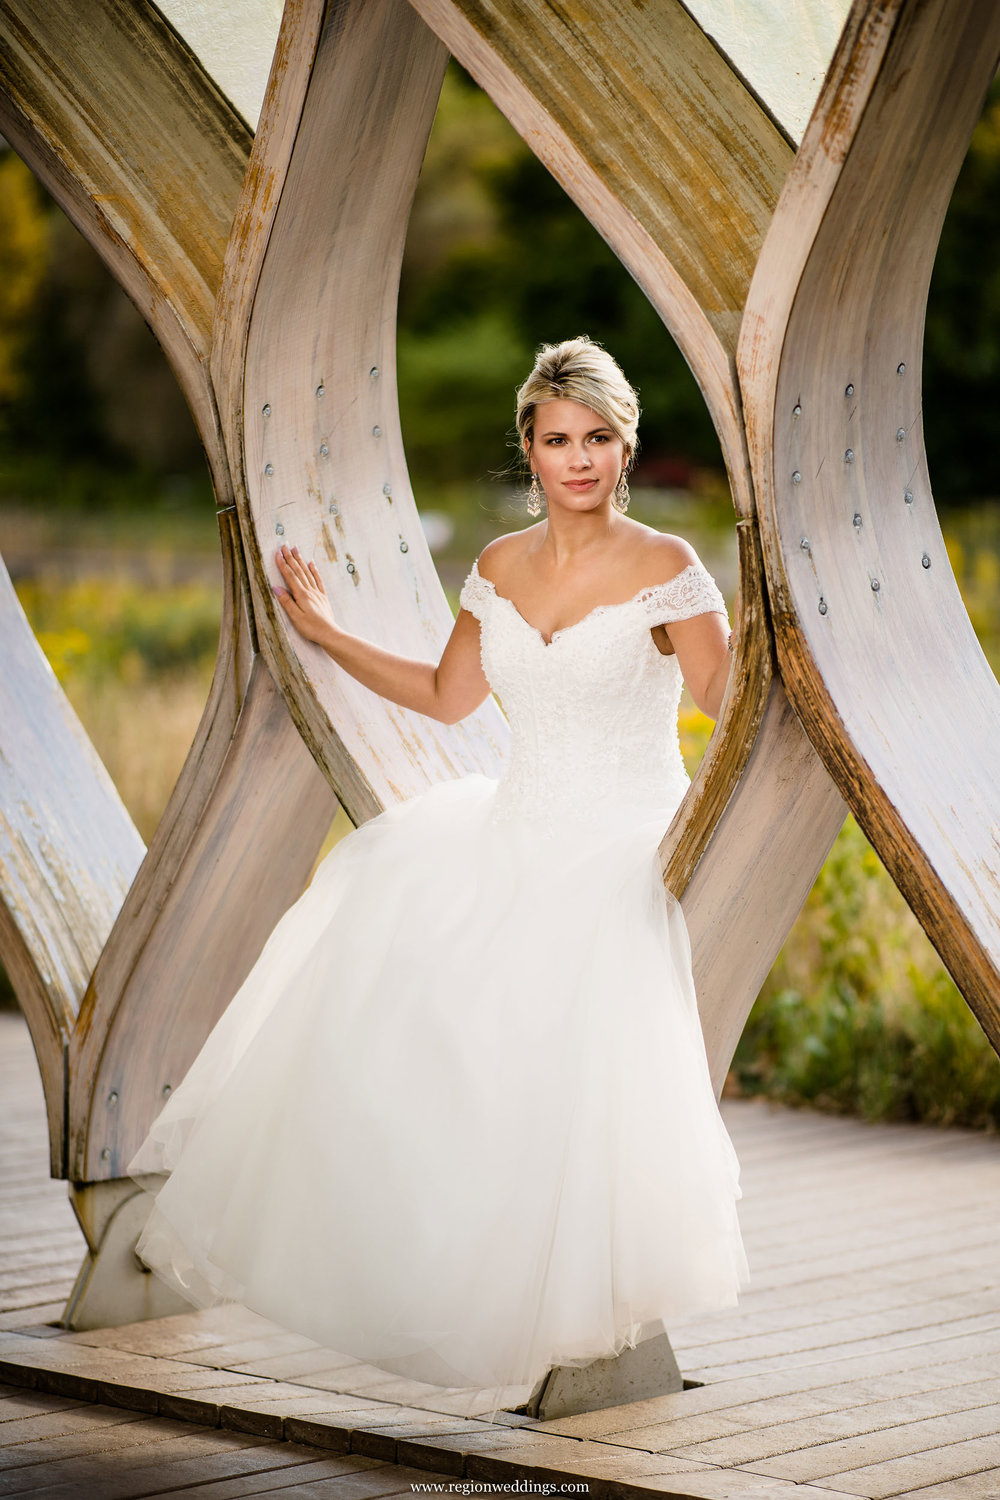 Bride at the Nature Boardwalk near Lincoln Park Zoo in Chicago.